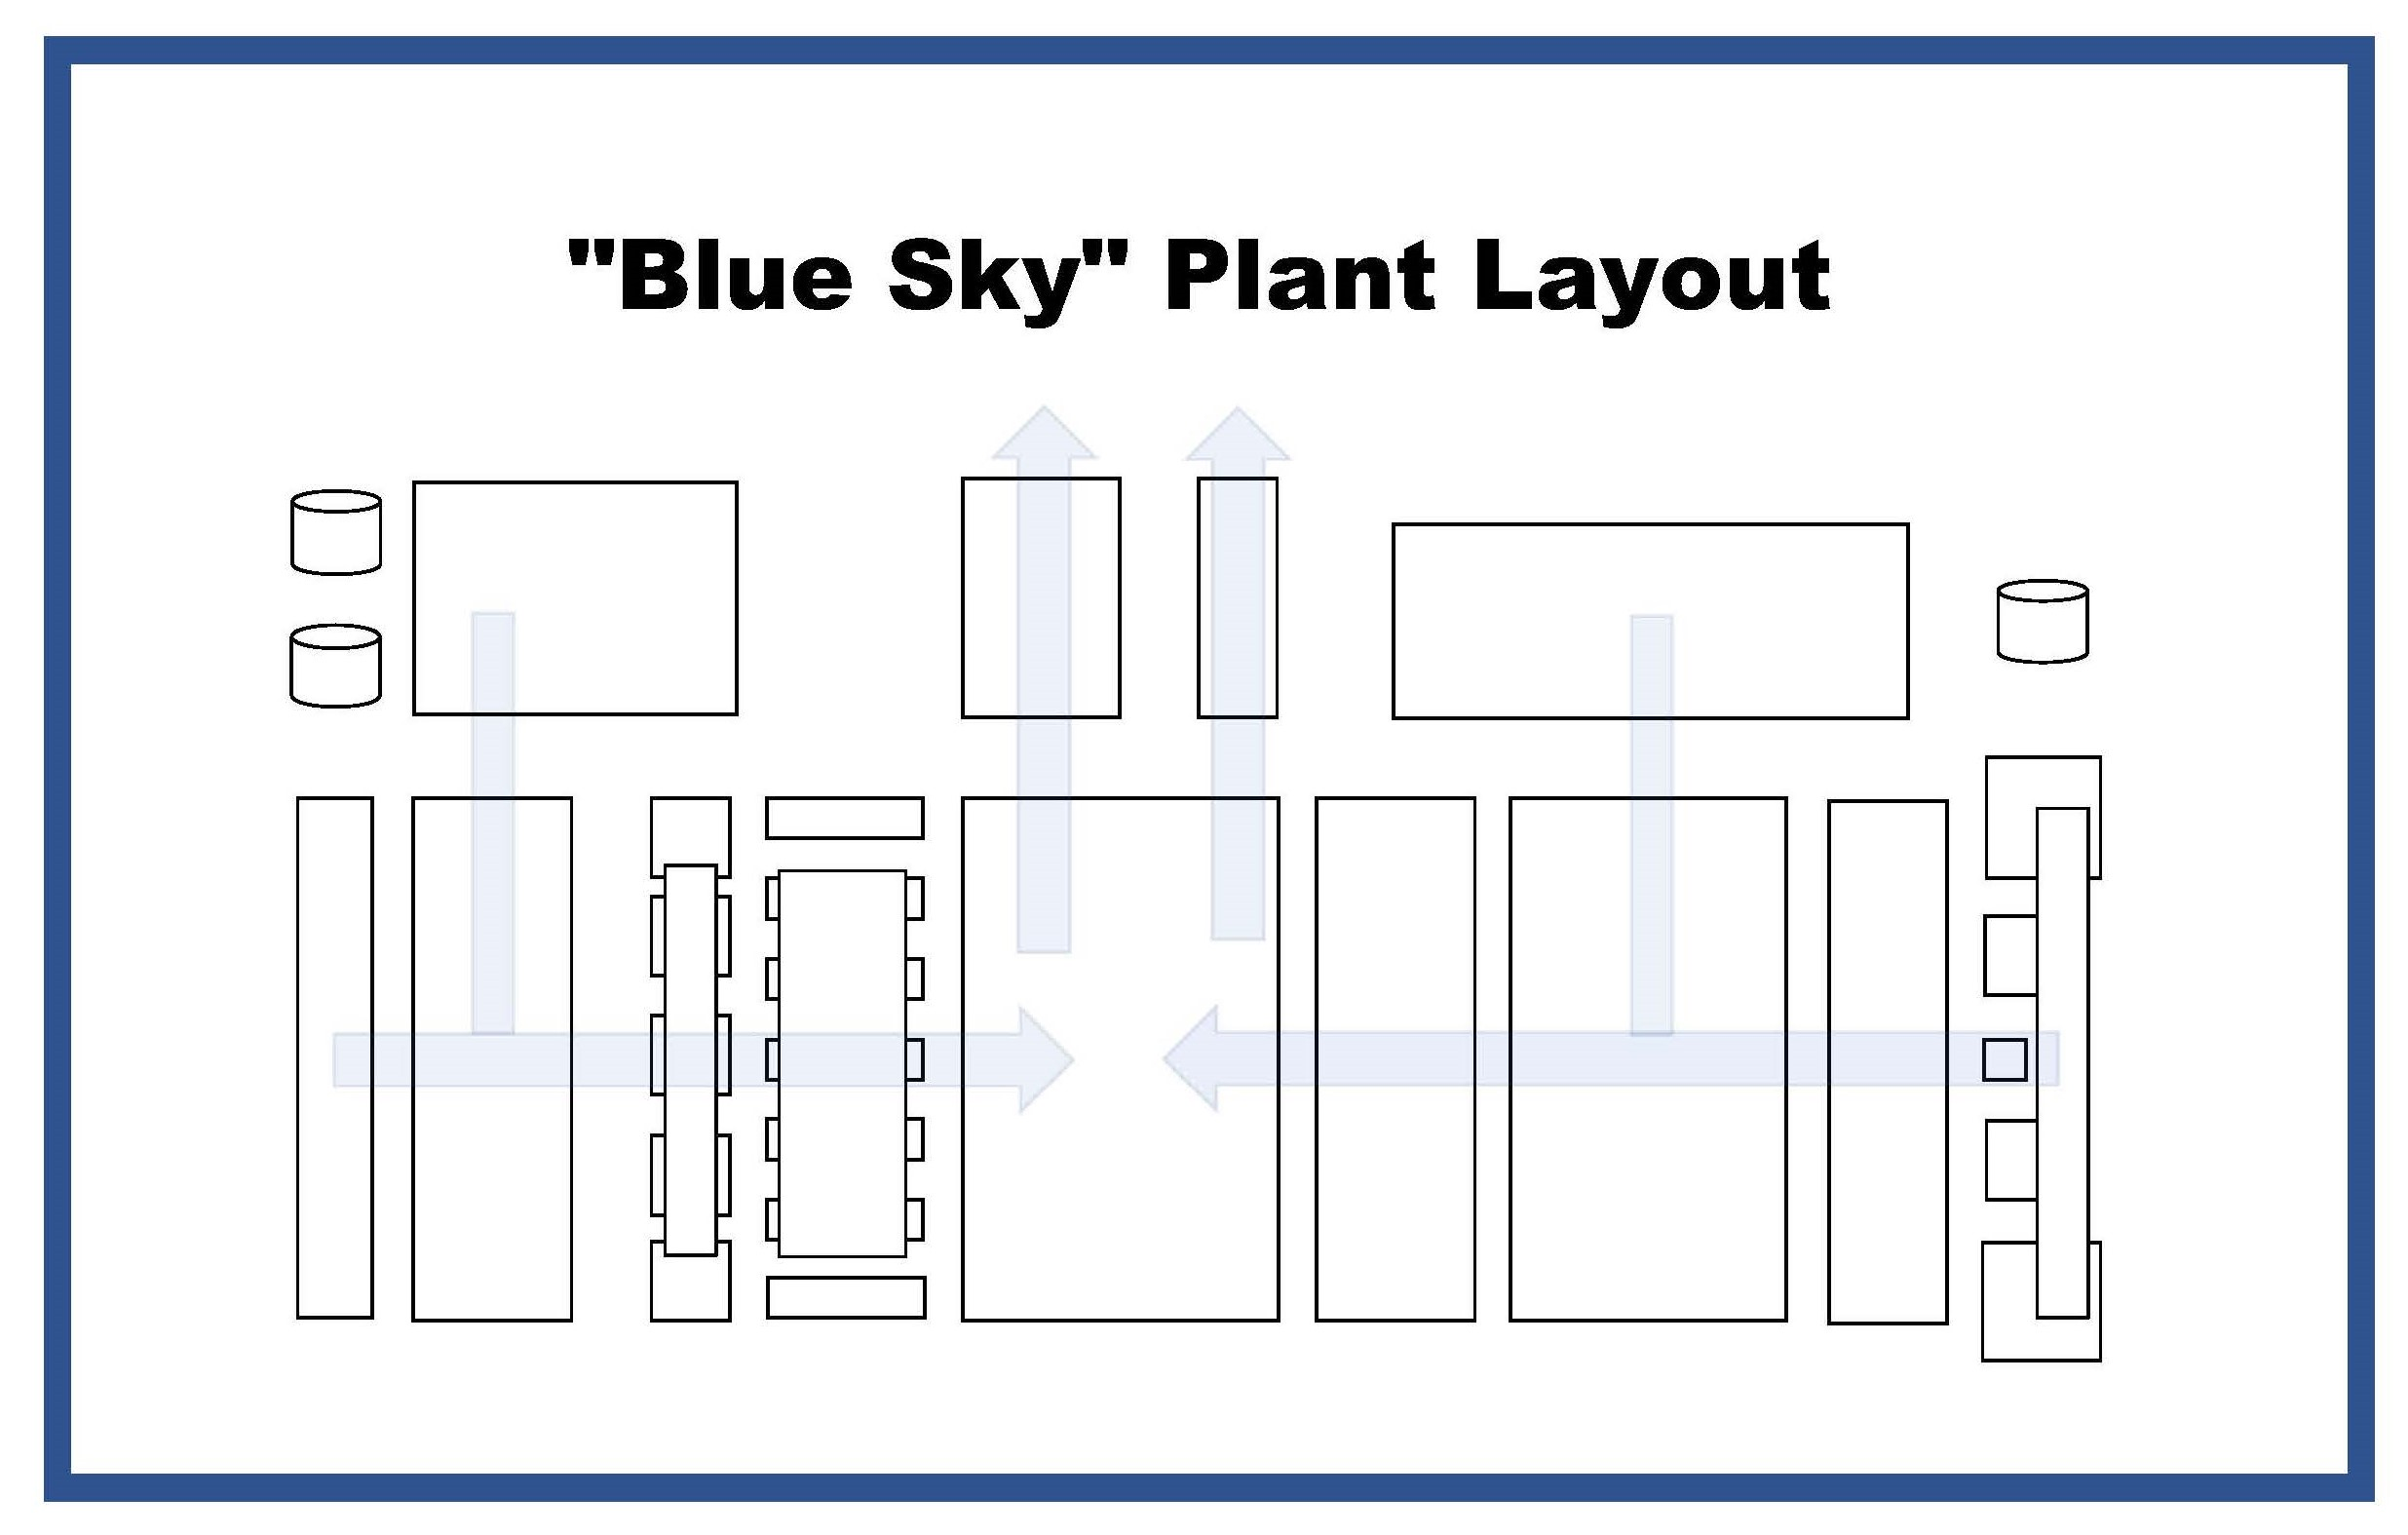 Blue Sky plant layout